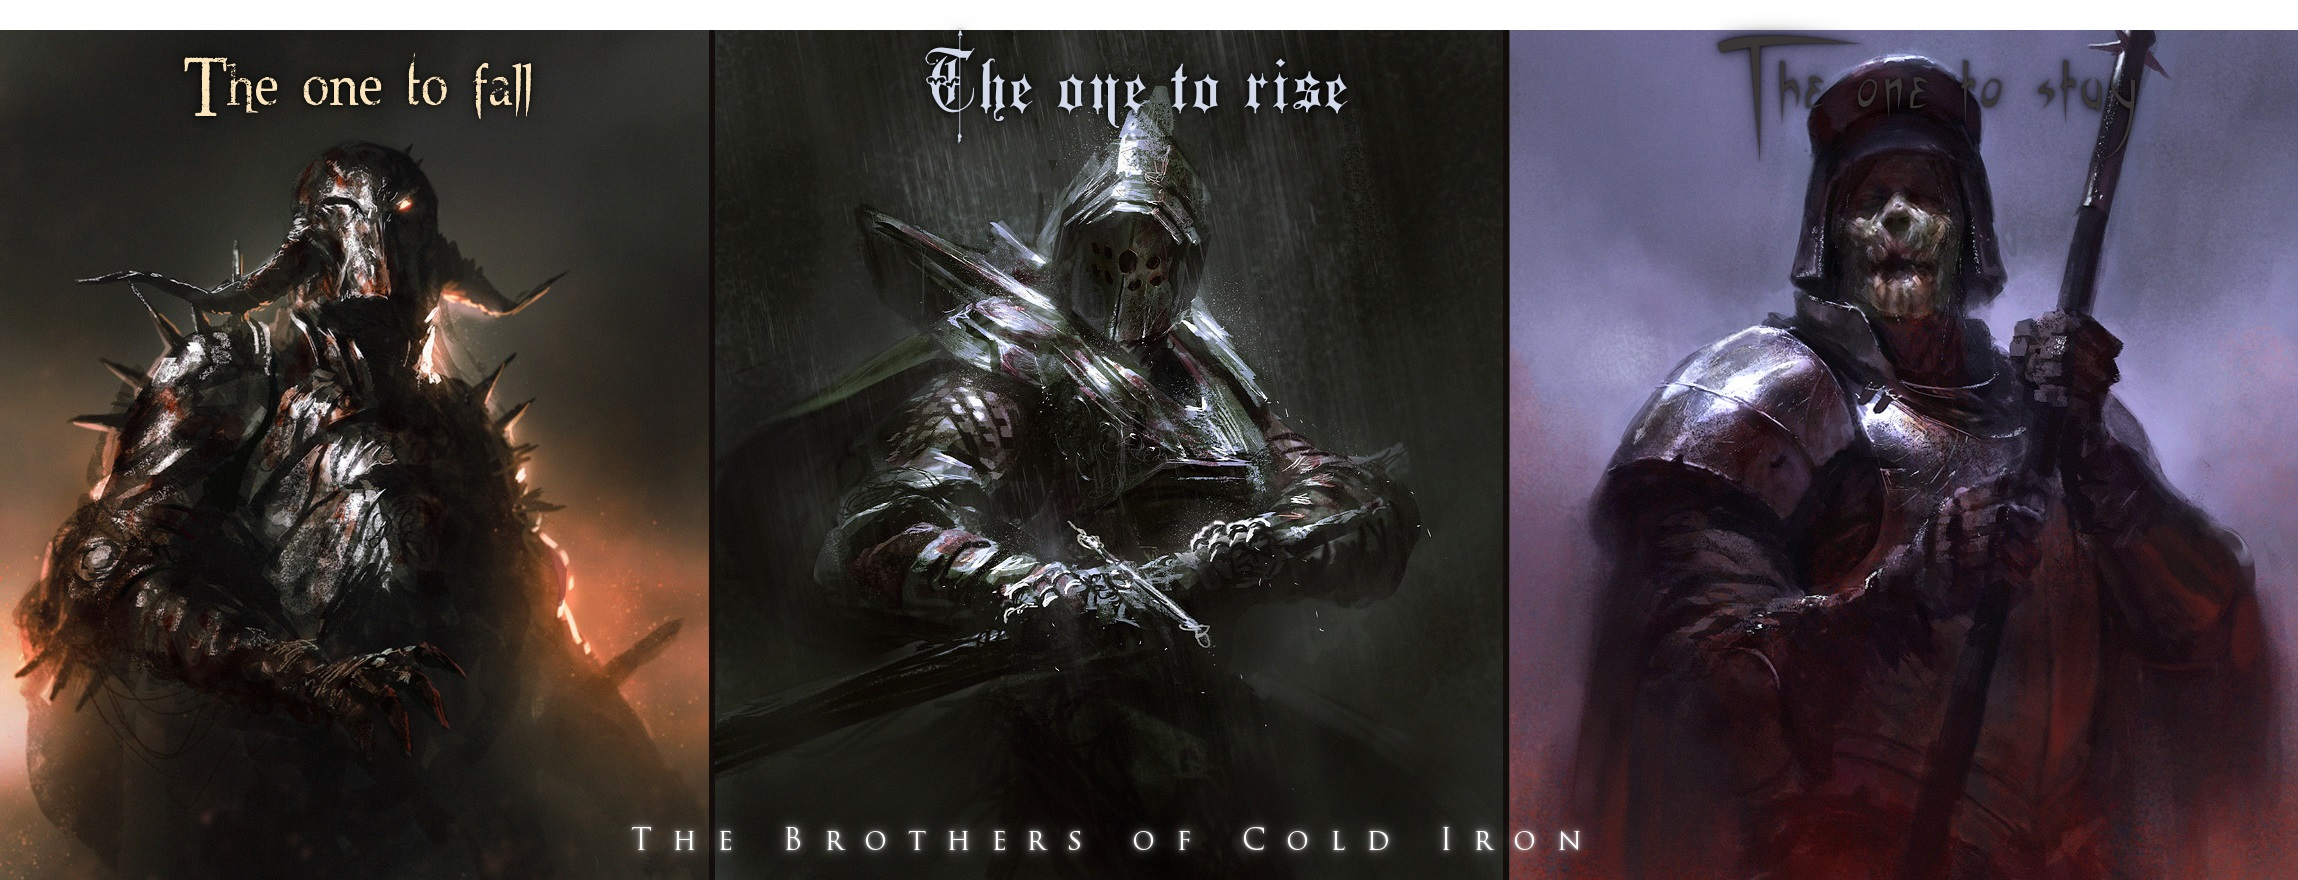 The_Brother_of_Cold_Iron_01.jpg